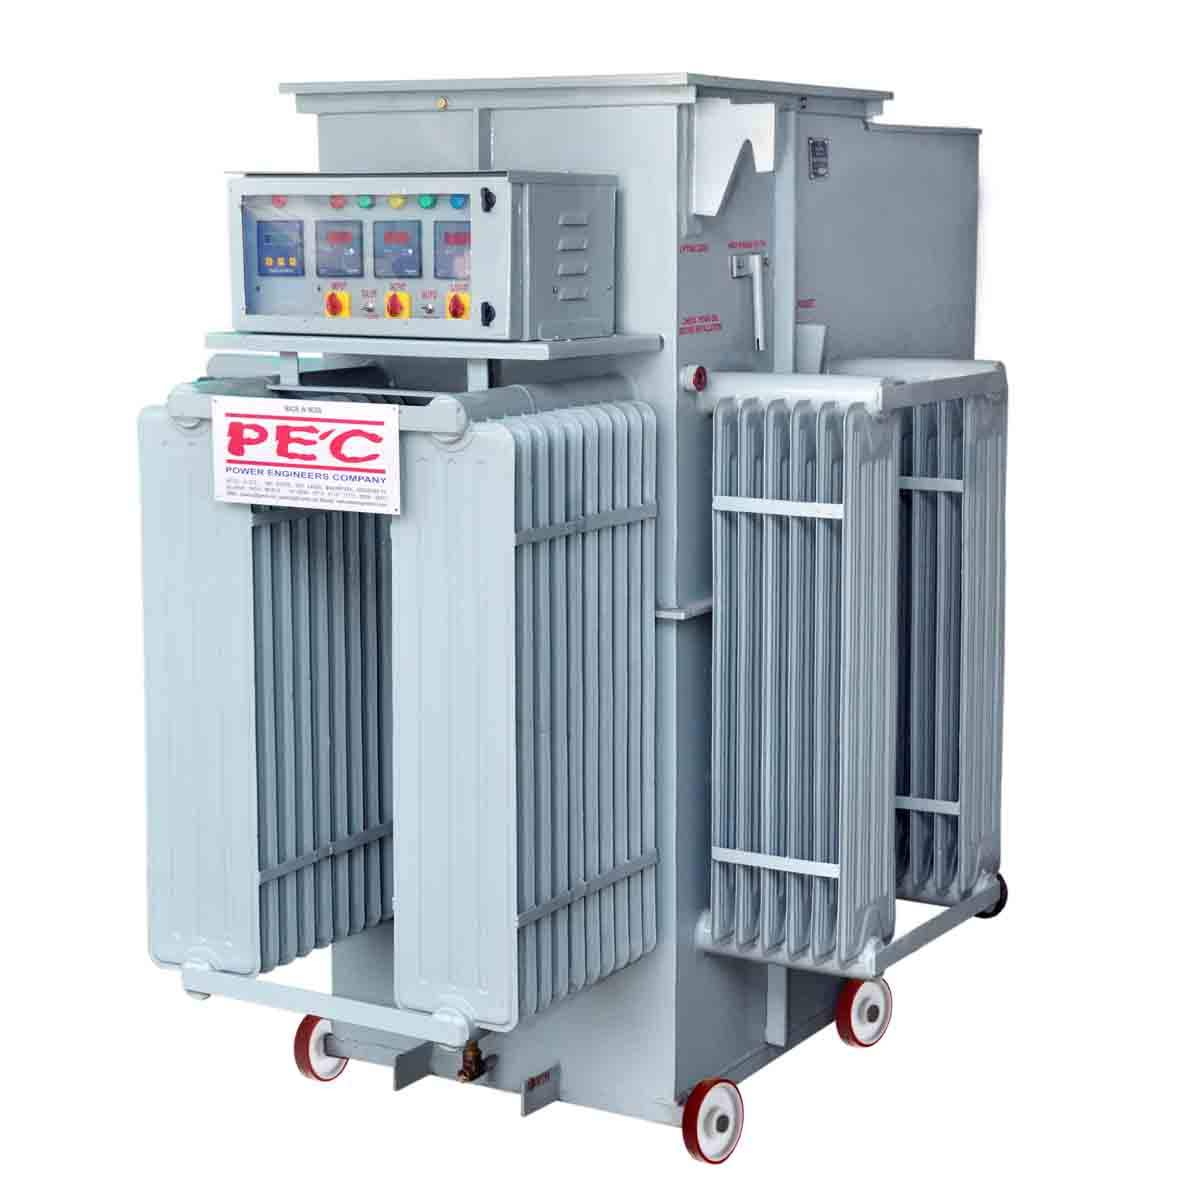 AUTOMATIC VOLTAGE REGULATOR 1500 KVA